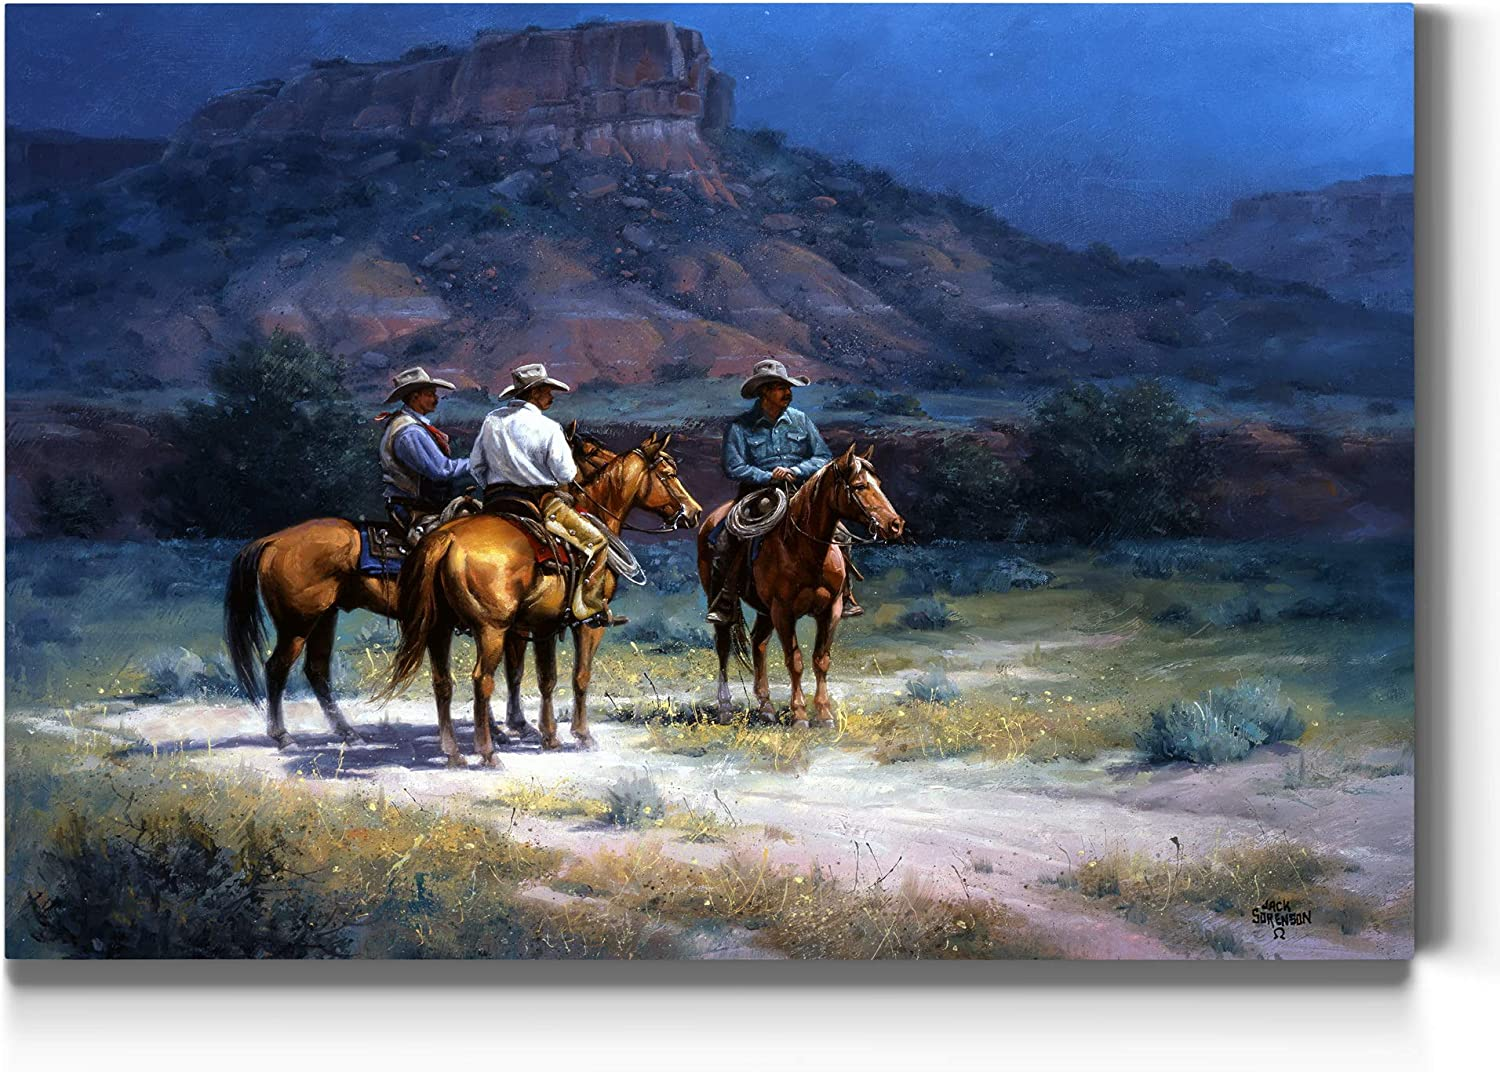 Renditions Gallery Moonshine Wall Art, Three Cowboys at The Basin of a Mountain at Night, Southwestern, Premium Gallery Wrapped Canvas Decor, Ready to Hang, 24 in H x 36 in W, Made in America Print